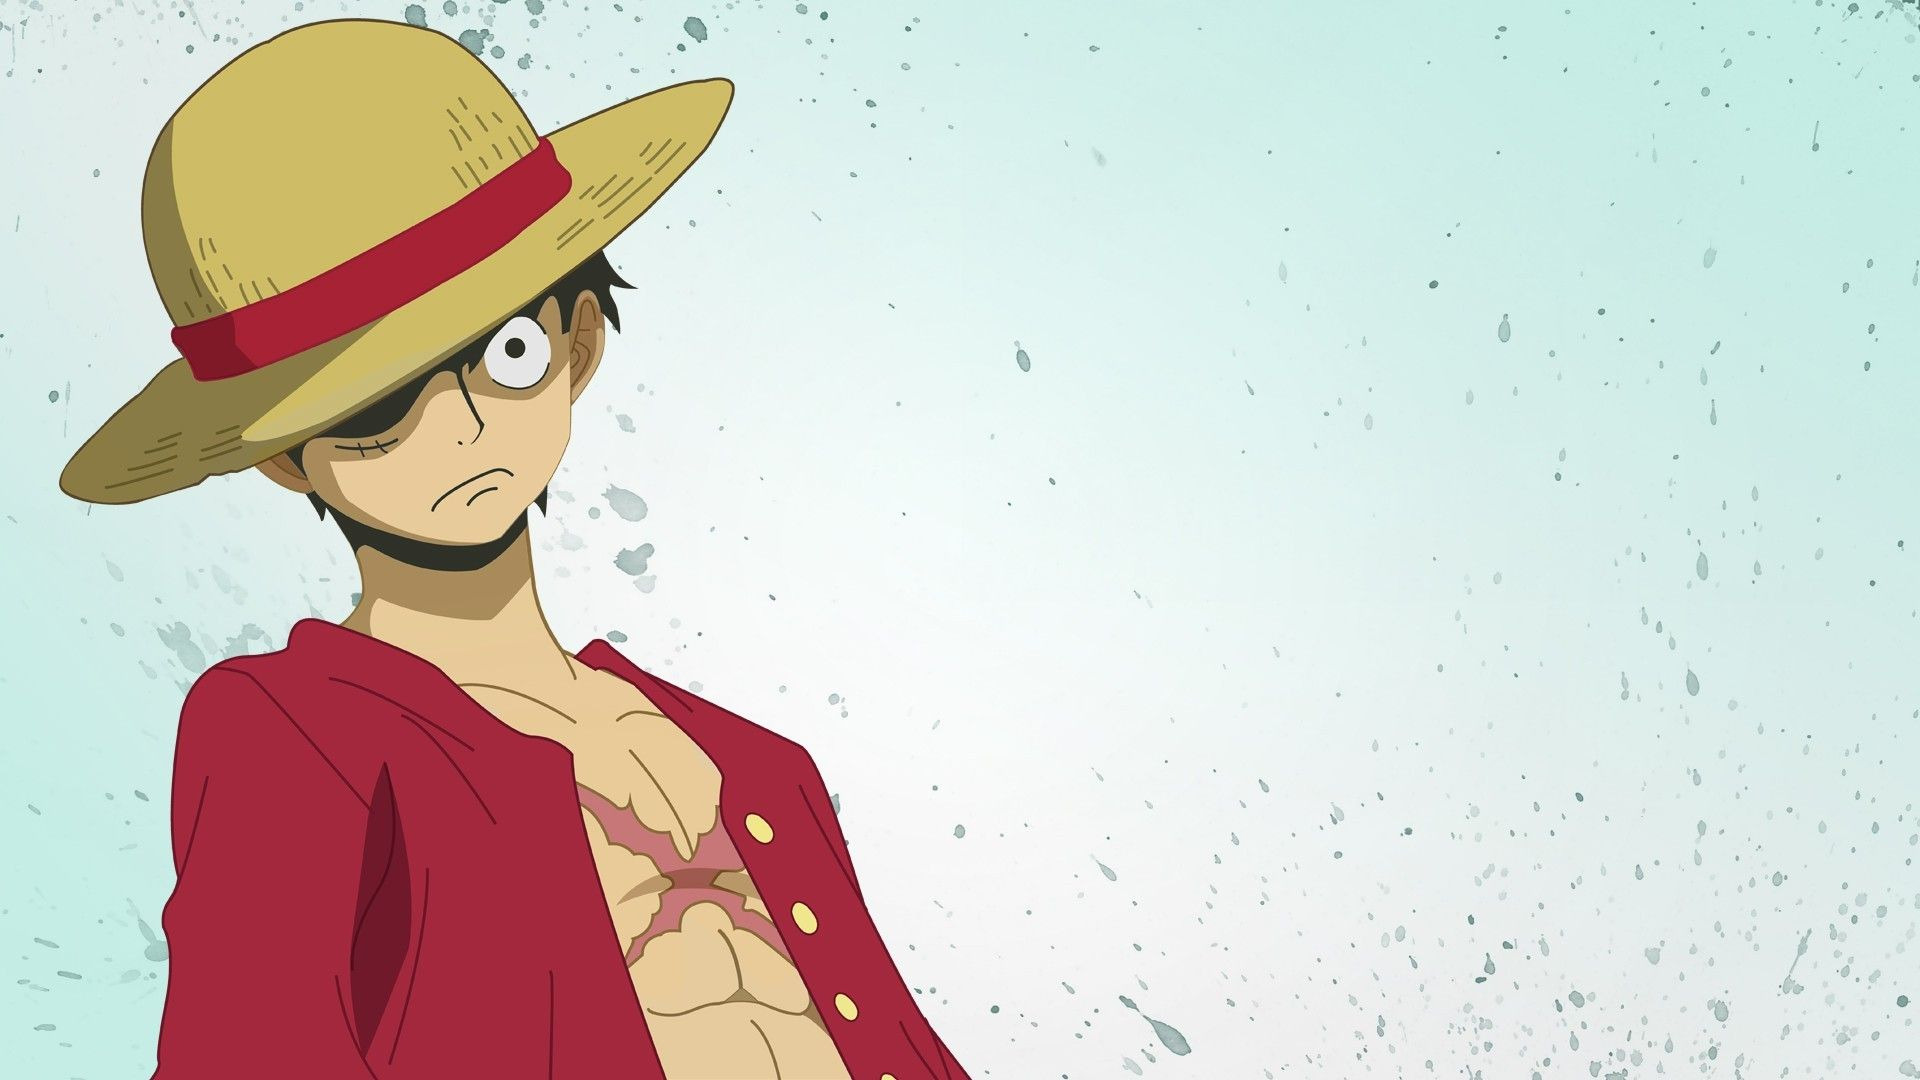 luffy onepiece wallpaper da0 | hd wallpaper, blue wallpaper